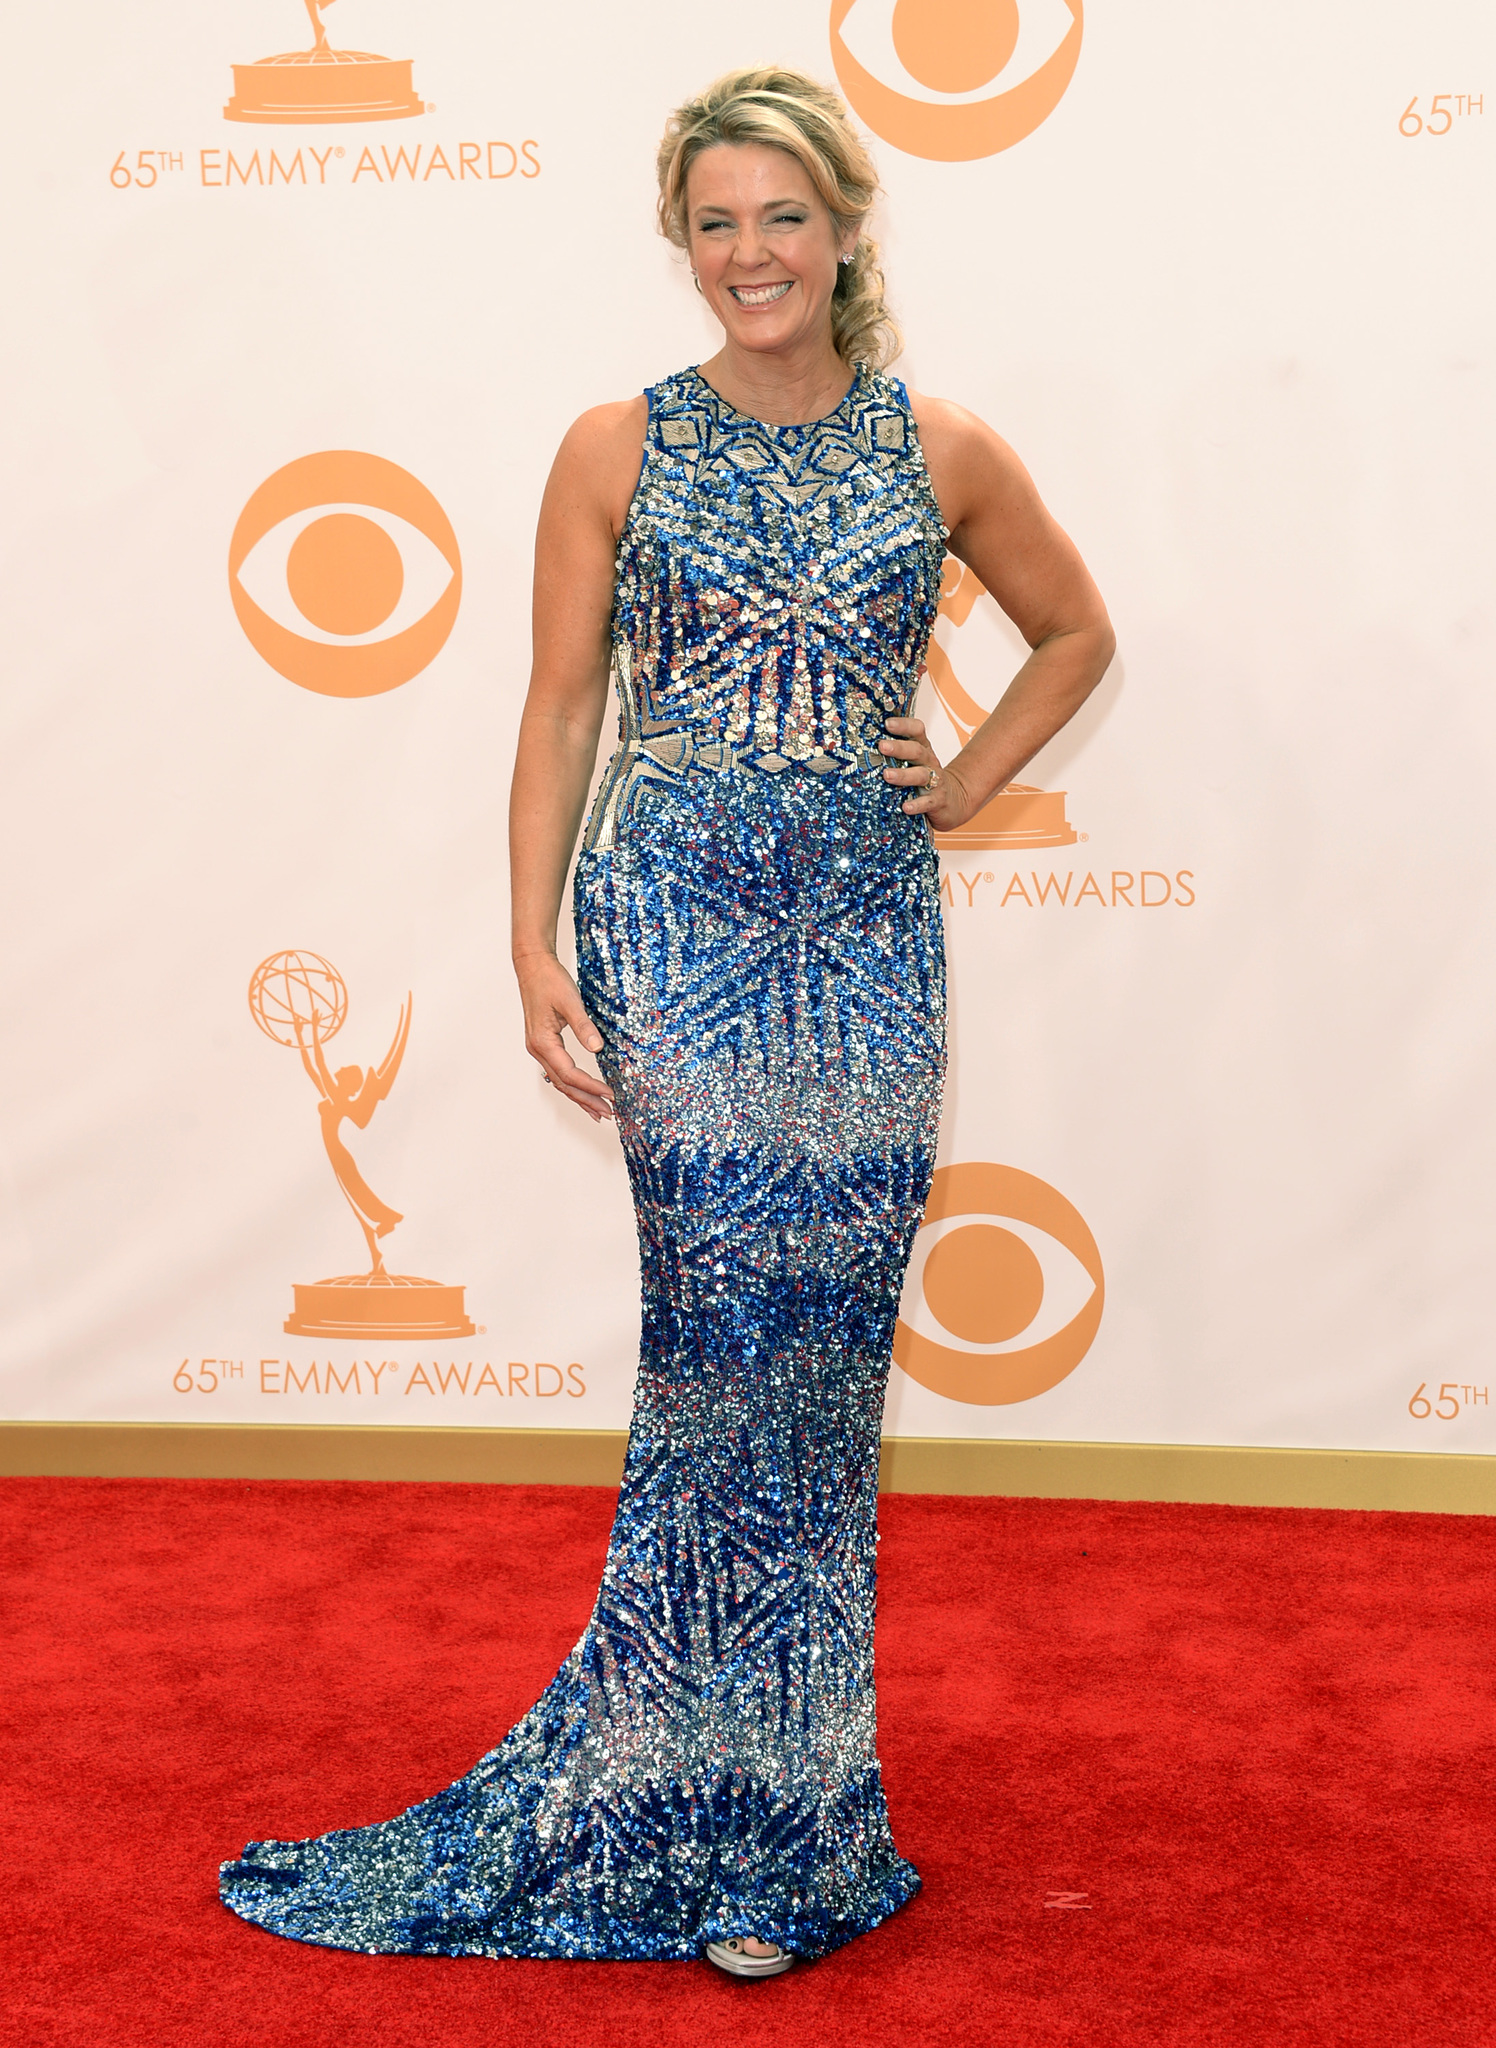 Deborah Norville at an event for The 65th Primetime Emmy Awards (2013)